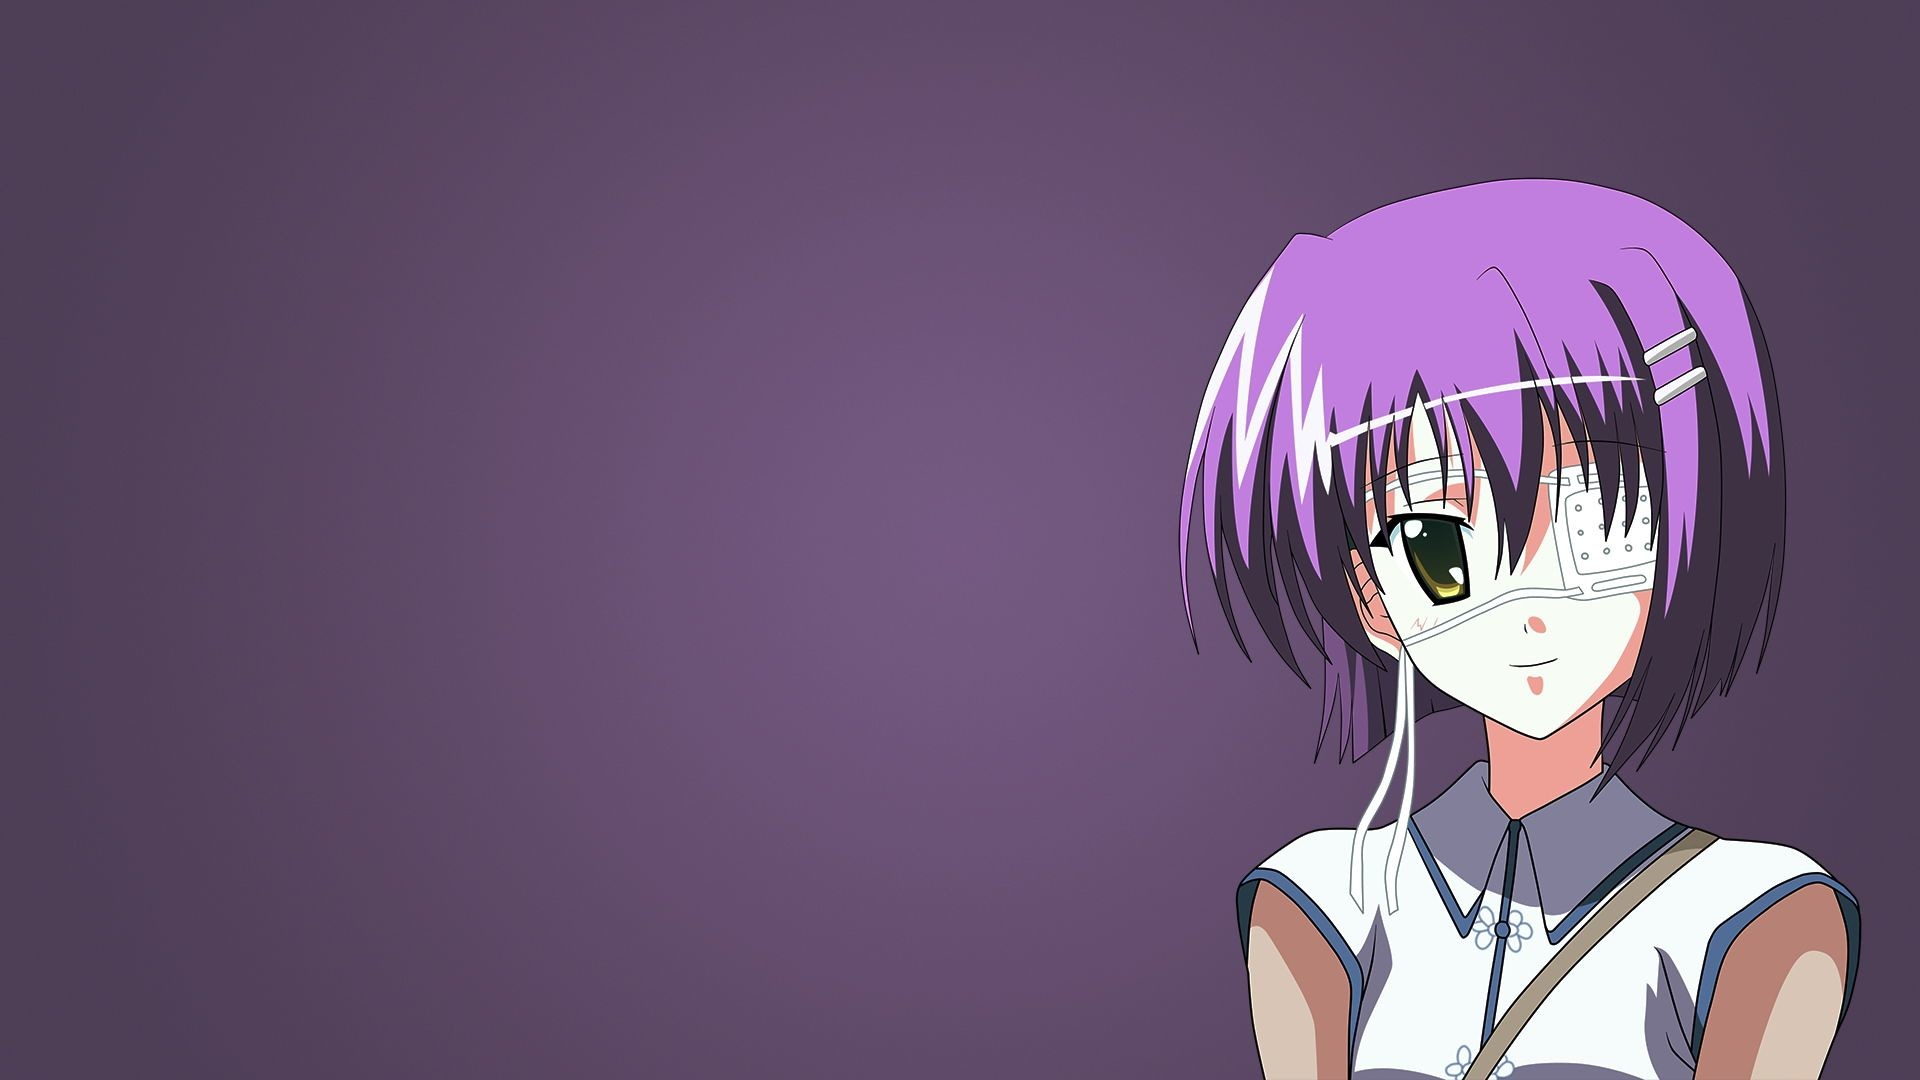 Res: 1920x1080, free animated wallpaper windows 8 | Clean Anime Windows 8 Theme | Download  free windows 8